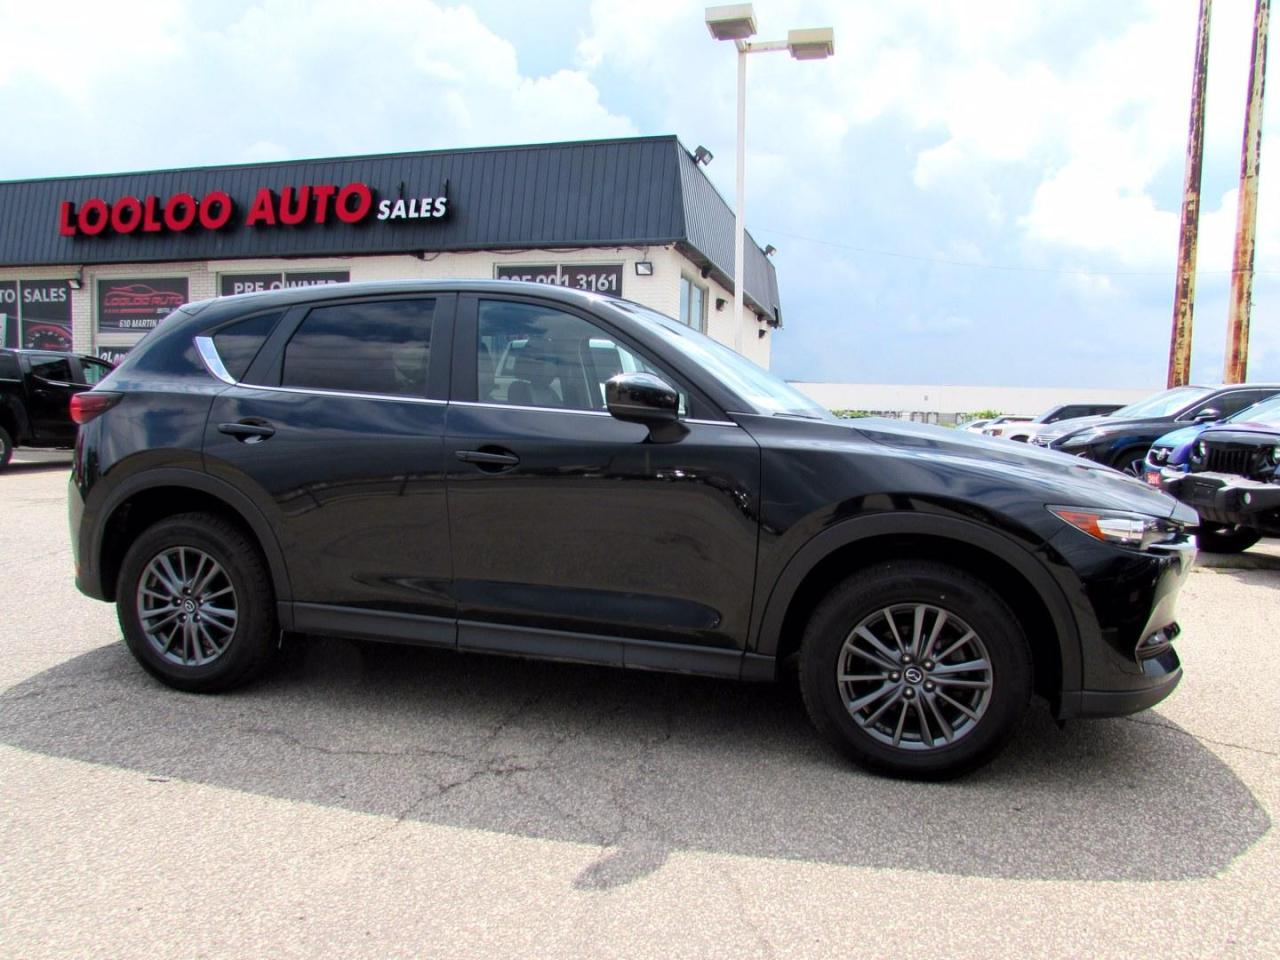 used 2019 mazda cx-5 touring awd camera leather bluetooth certified for sale in milton, ontario carpages.ca